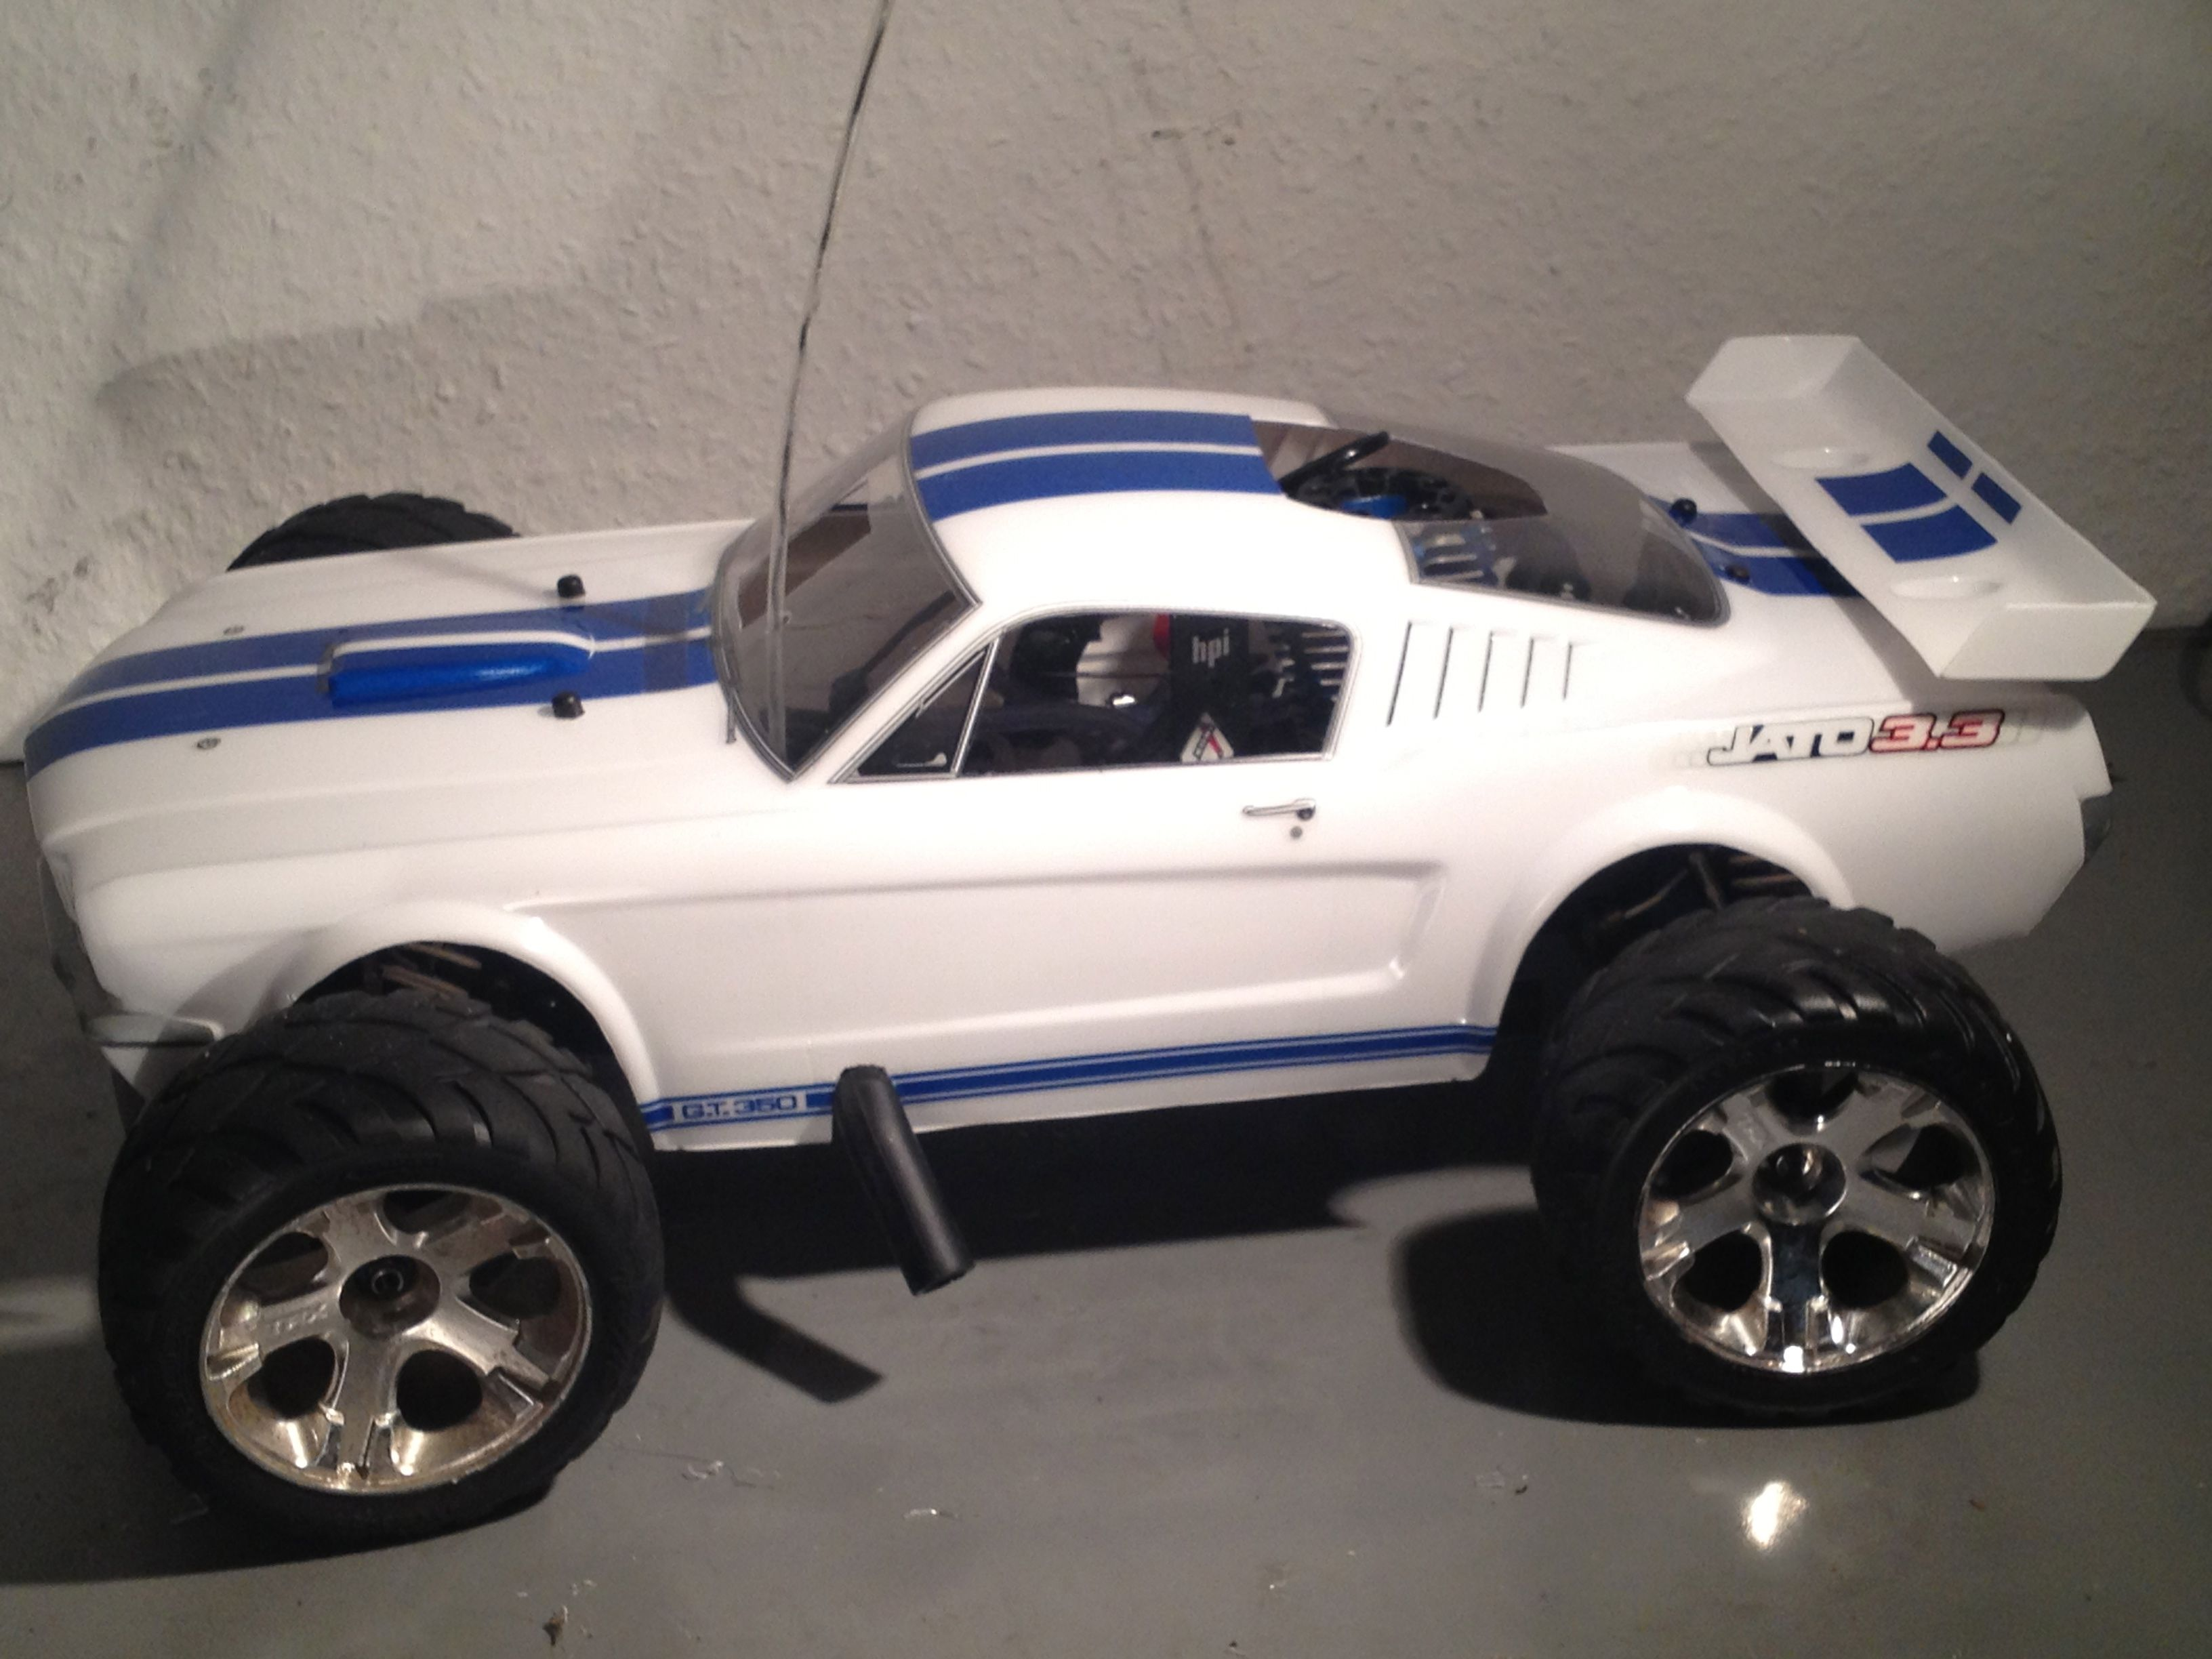 Shelby Mustang Body on Traxxas Jato Rc